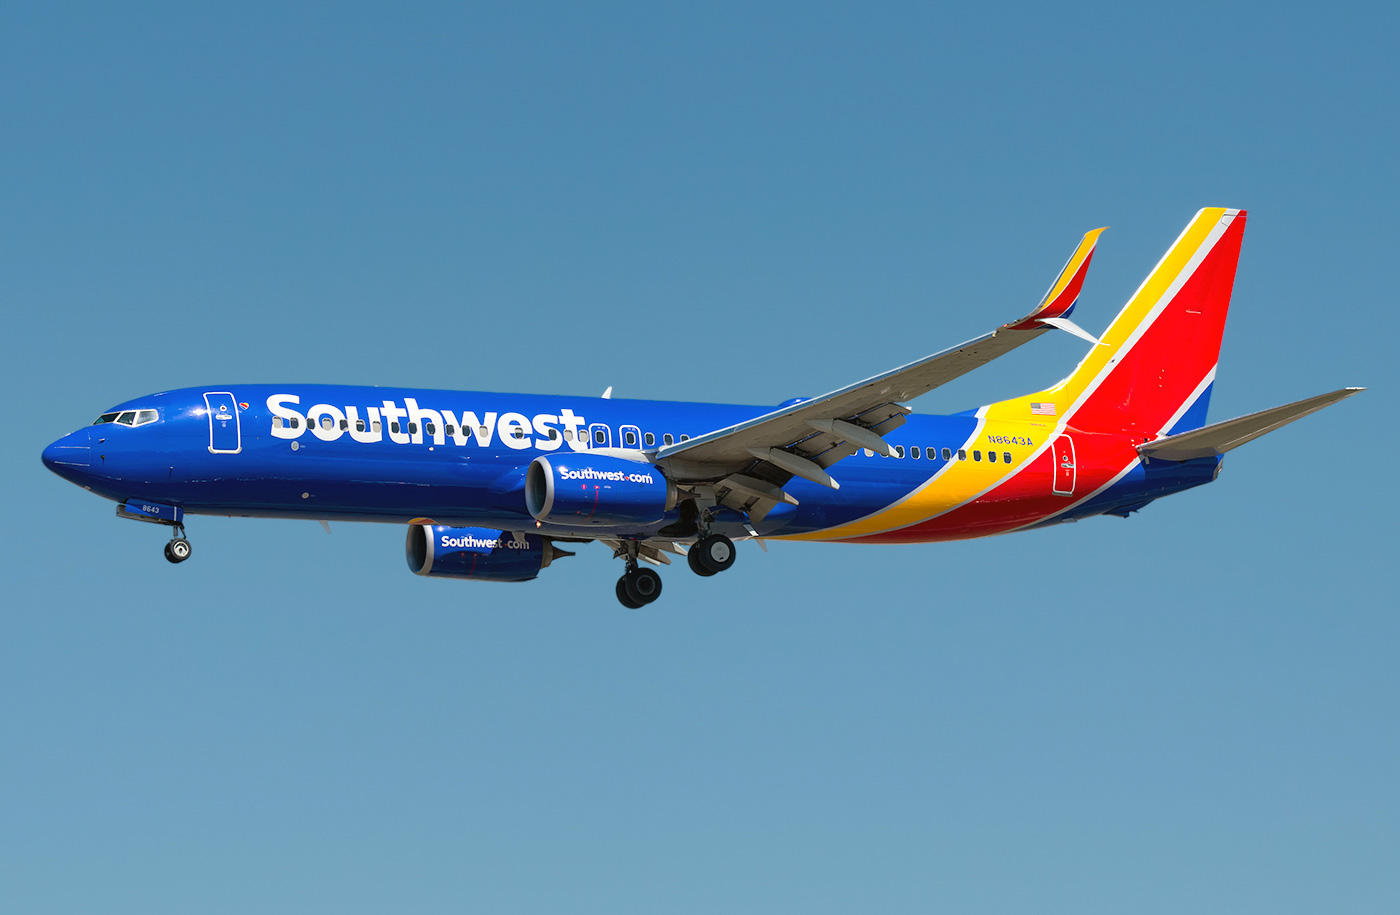 Southwest Airlines | South West Airlines Boarding Pass | Book a Flight |Flight Status| Southwest Airlines is America's largest low-fare carrier, serving more Customers domestically than any other airline with a unique combination of low fares. With an extensive network, we serve more than 90 destinations throughout the United States, Mexico, and the Caribbean.